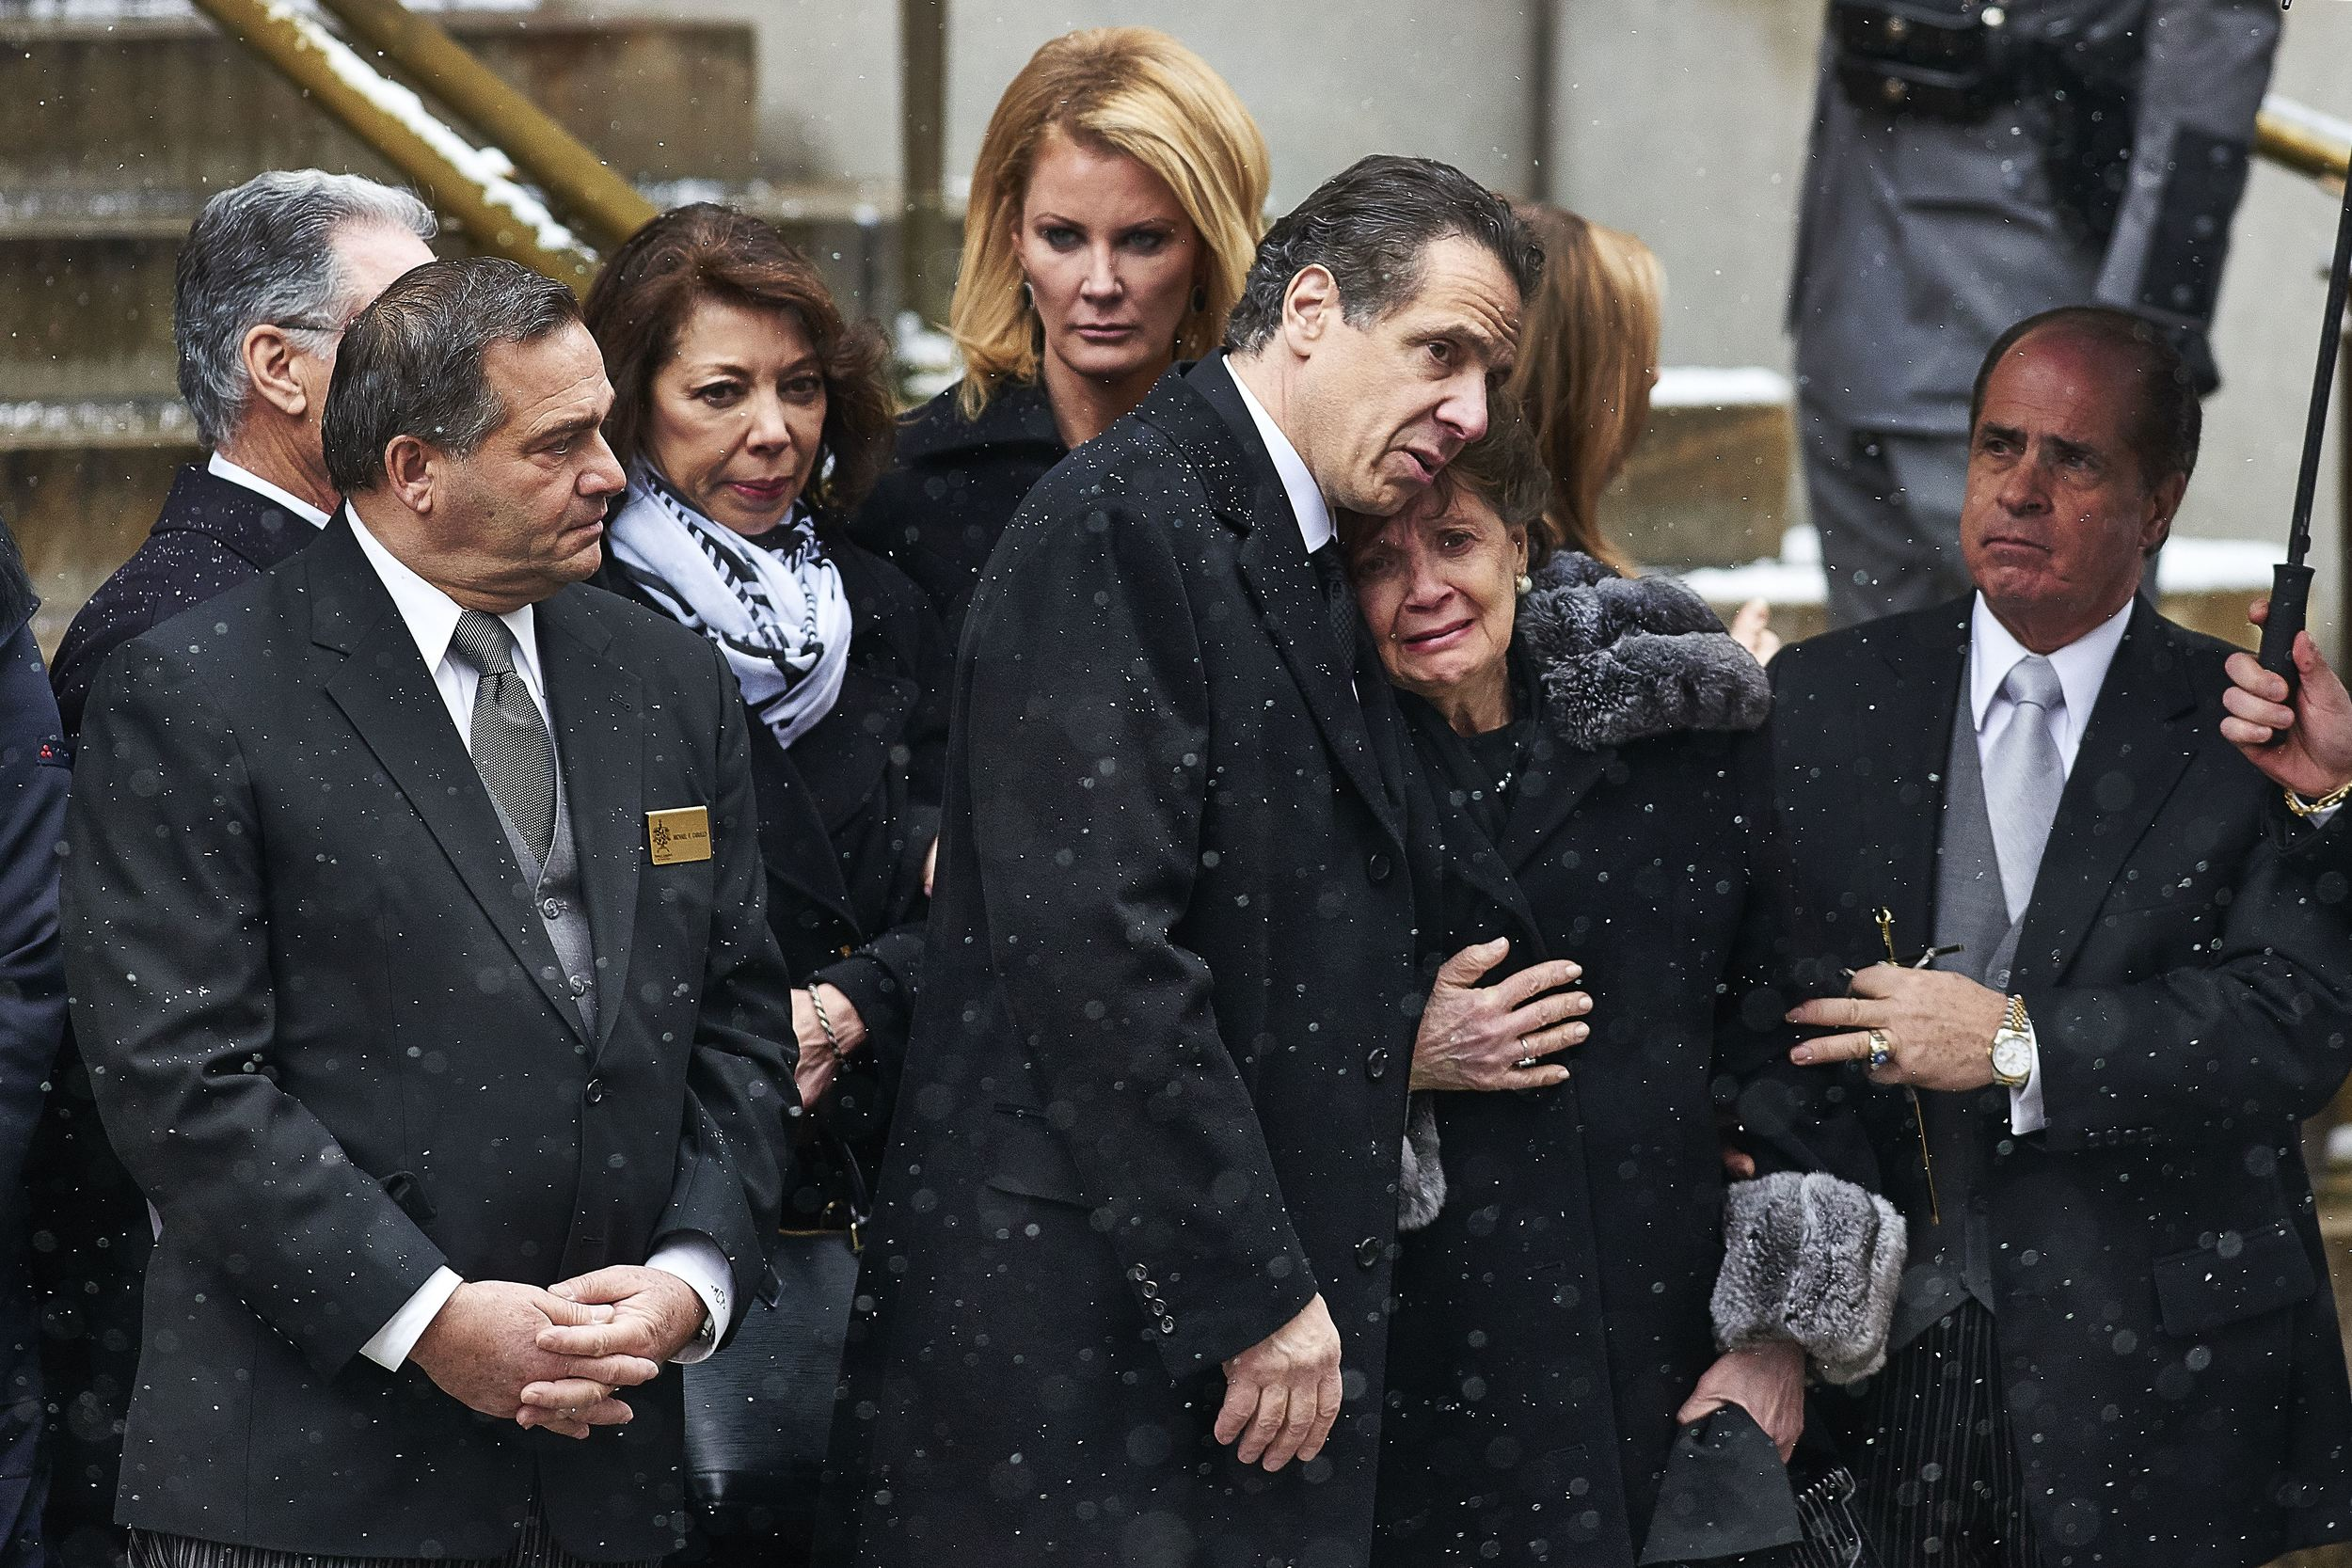 New York Governor Andrew Cuomo comforts his mother, Matilda Cuomo, as pallbearers carry the casket of her husband, former New York governor Mario Cuomo, out of the Church of St. Ignatius Loyola during his funeral on Tuesday, Jan. 6, 2015 in New York, N.Y.